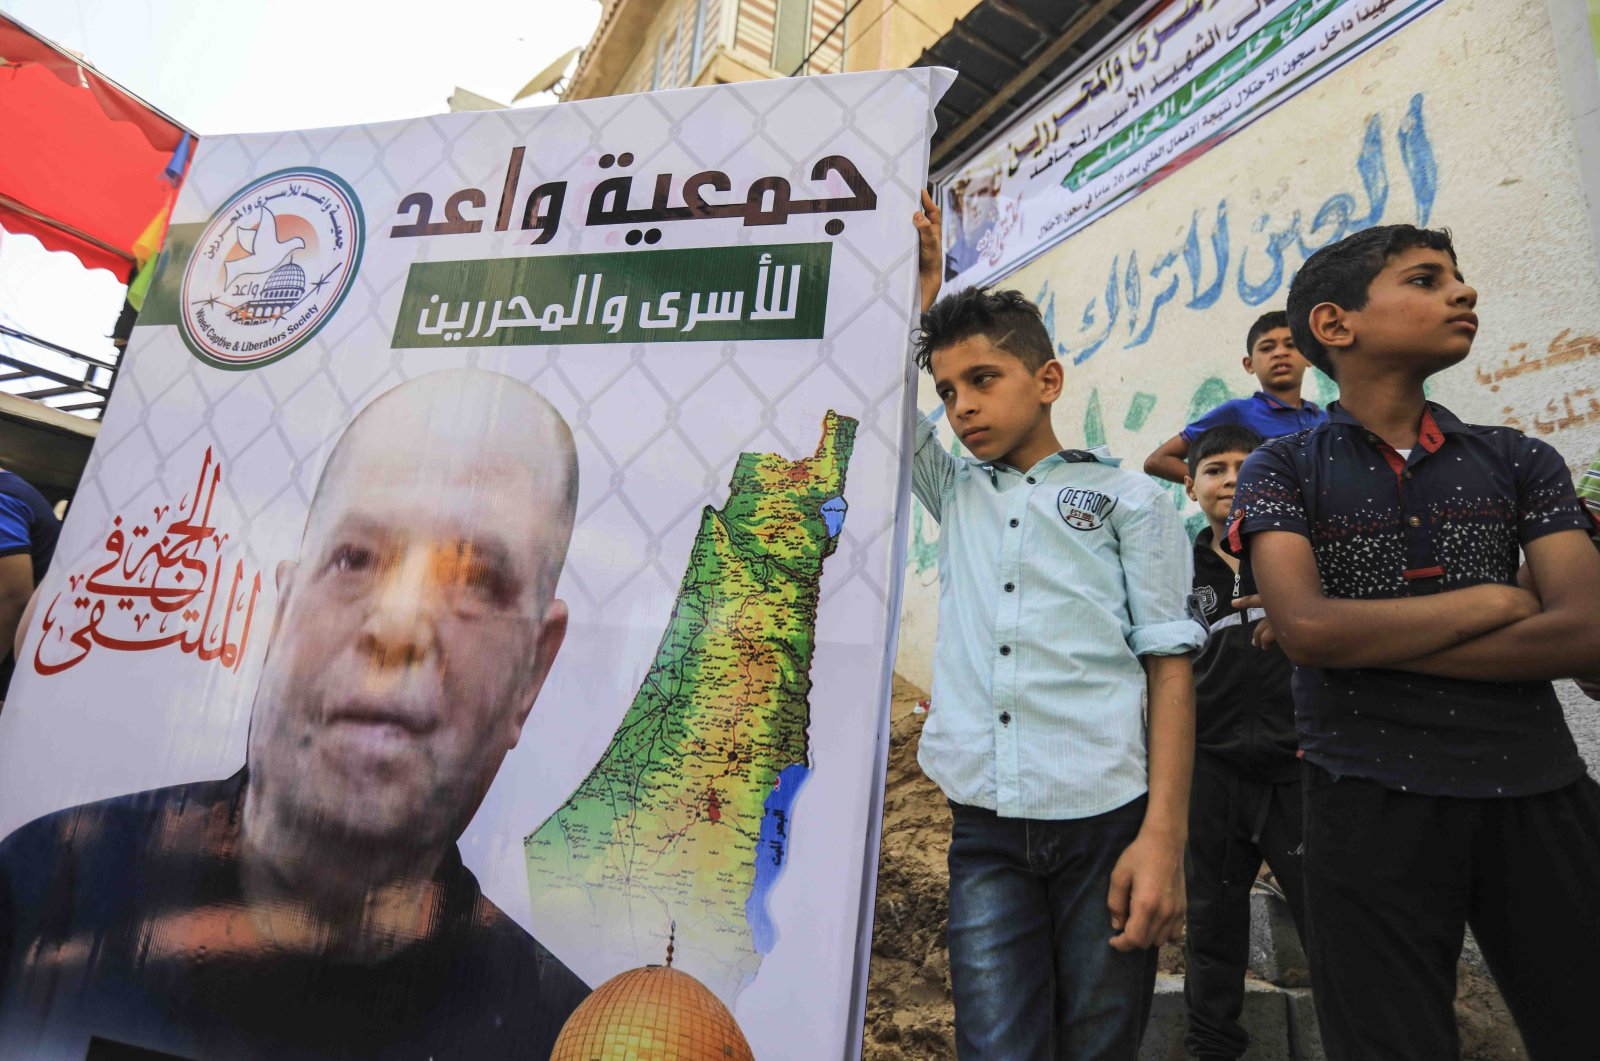 Youth stand next to a picture of Saadi al-Ghrabli (pictured), a Palestinian sentenced and imprisoned by Israel for life 26 years prior, outside a memorial service for him on the day of his death in Gaza City on July 8, 2020. (AFP Photo)